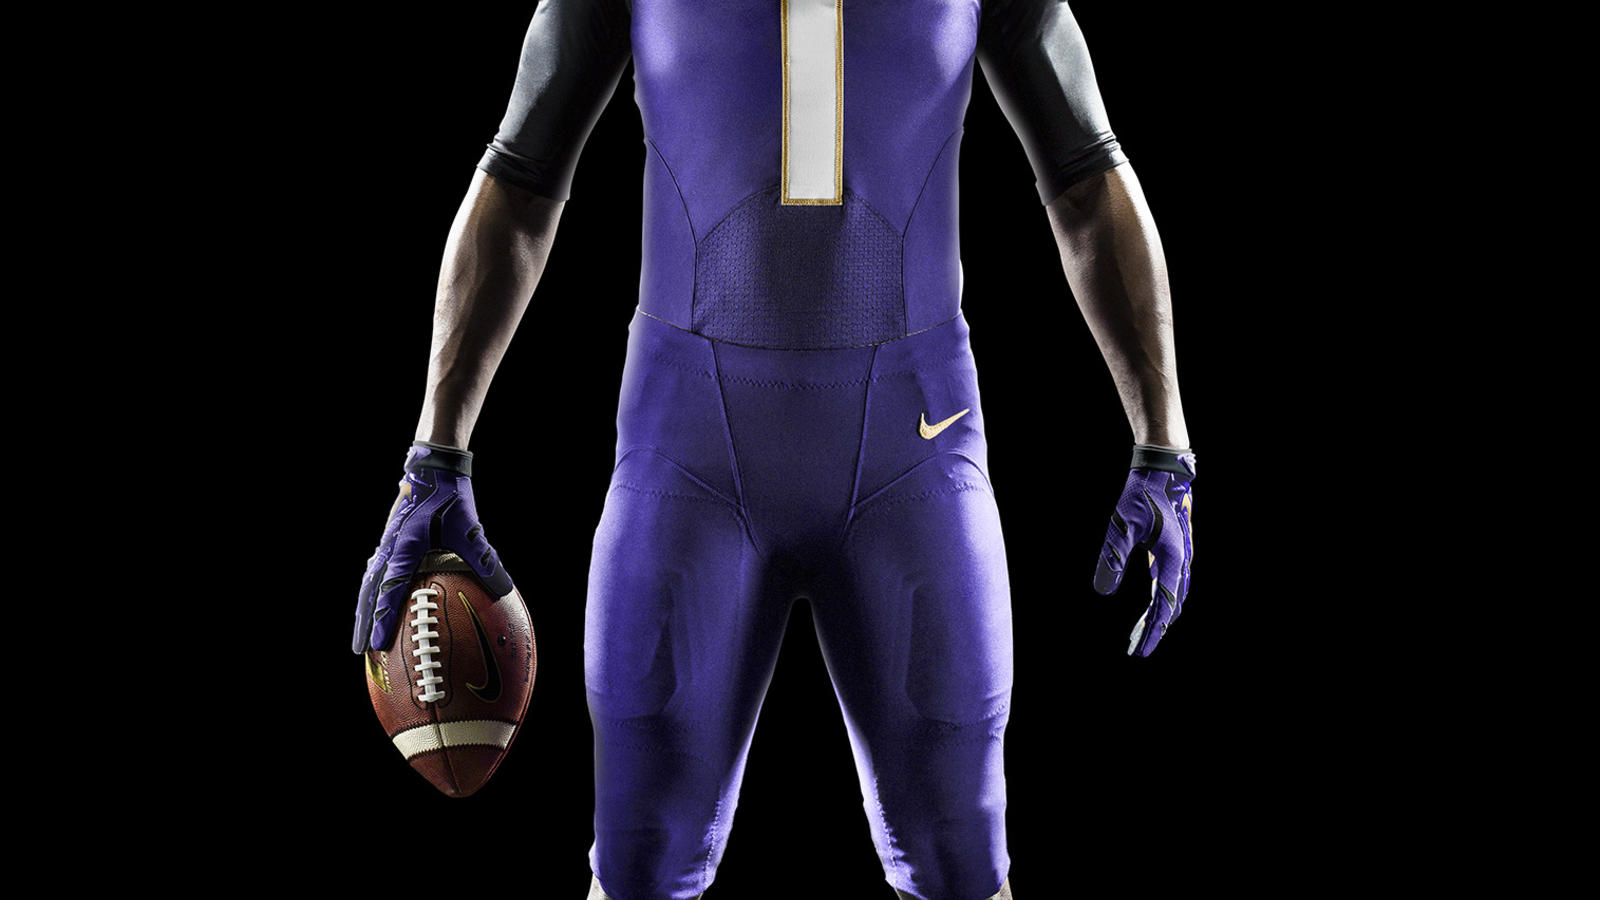 su14_at_ncaa_wa_comp_front_purple_jersey